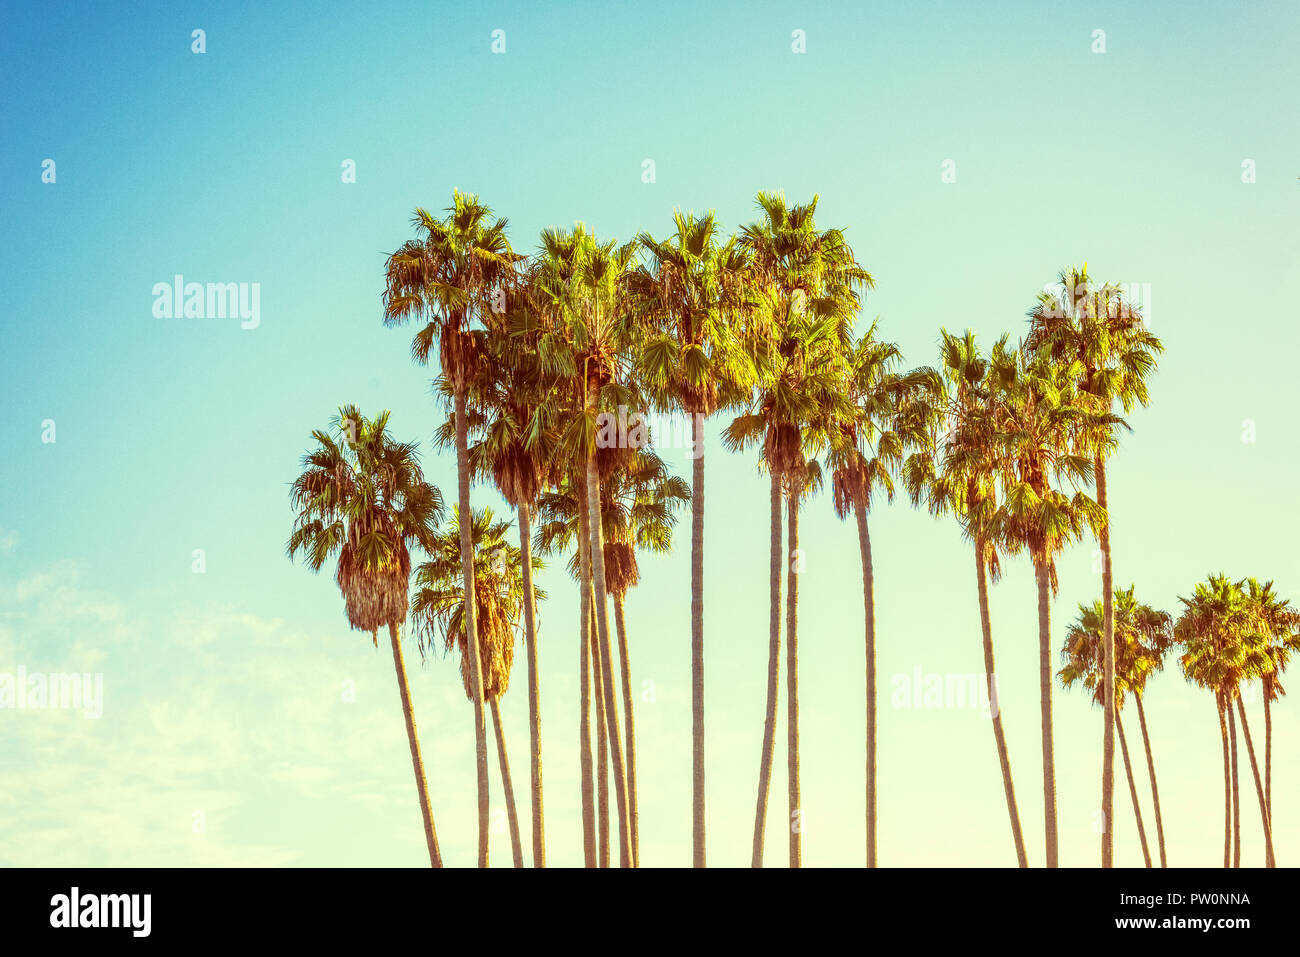 Group of palm trees. Photograph processed with vintage effect/feel. - Stock Image